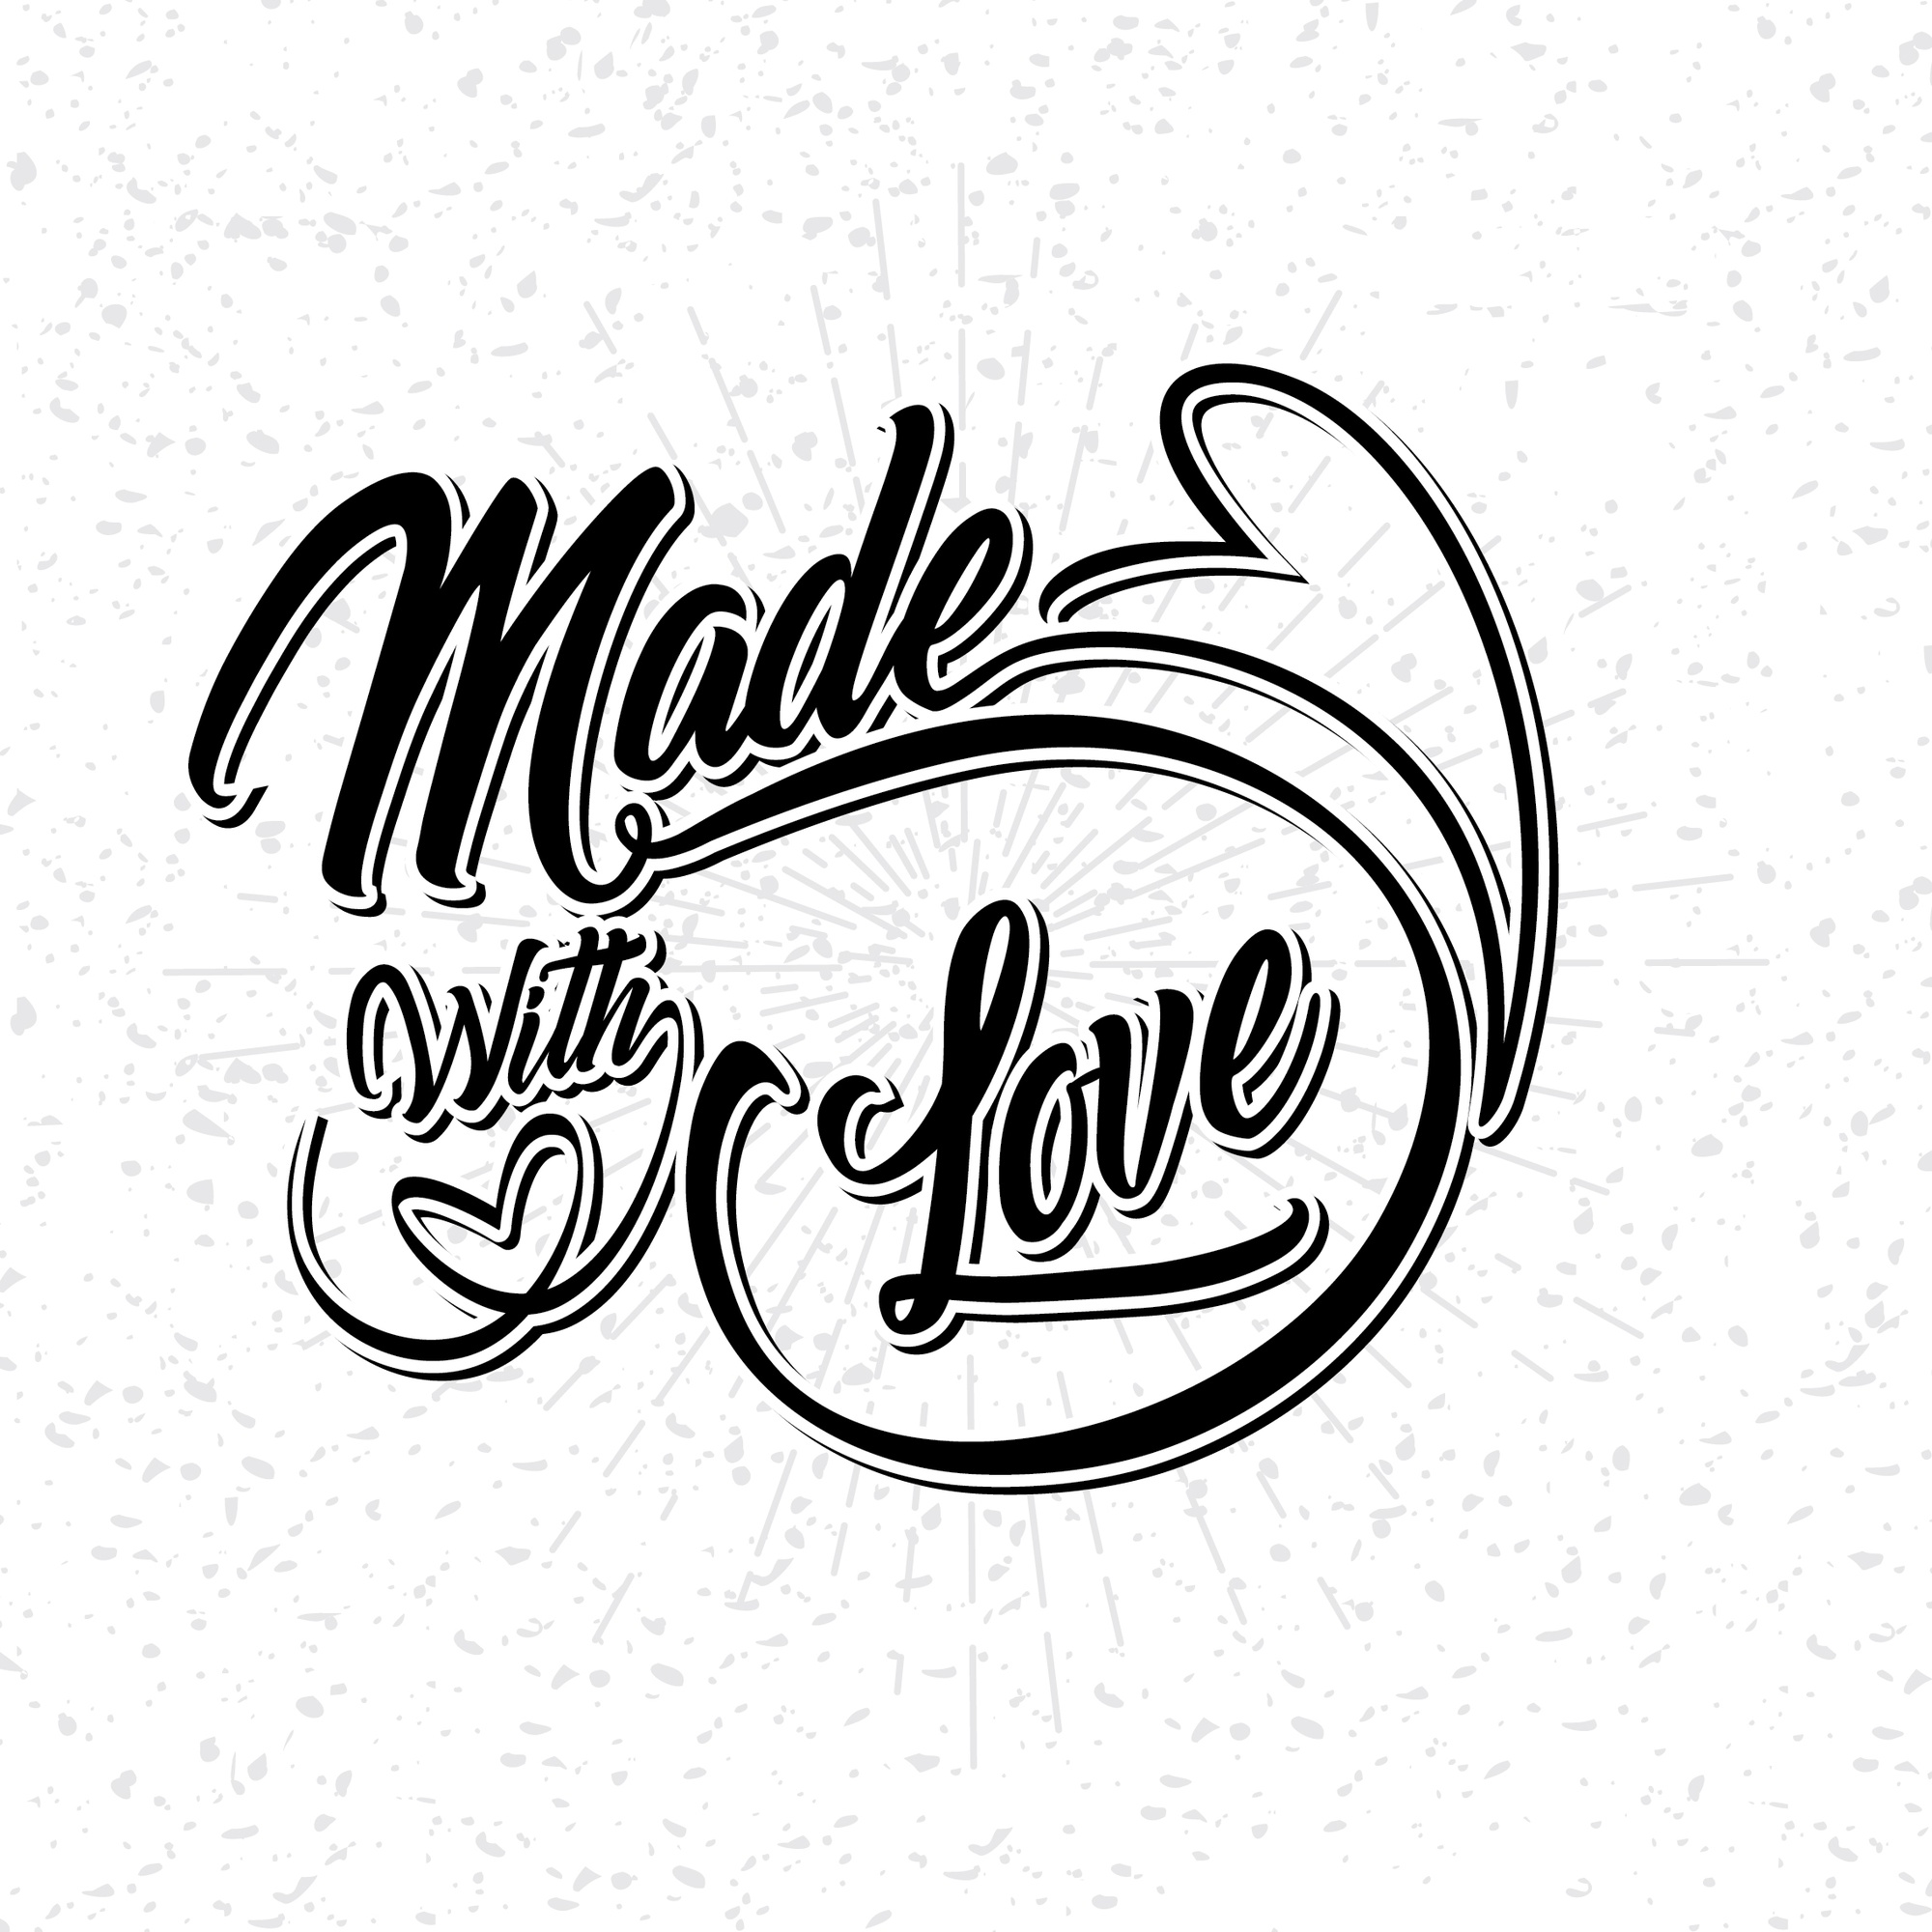 Made With Love Calligraphy